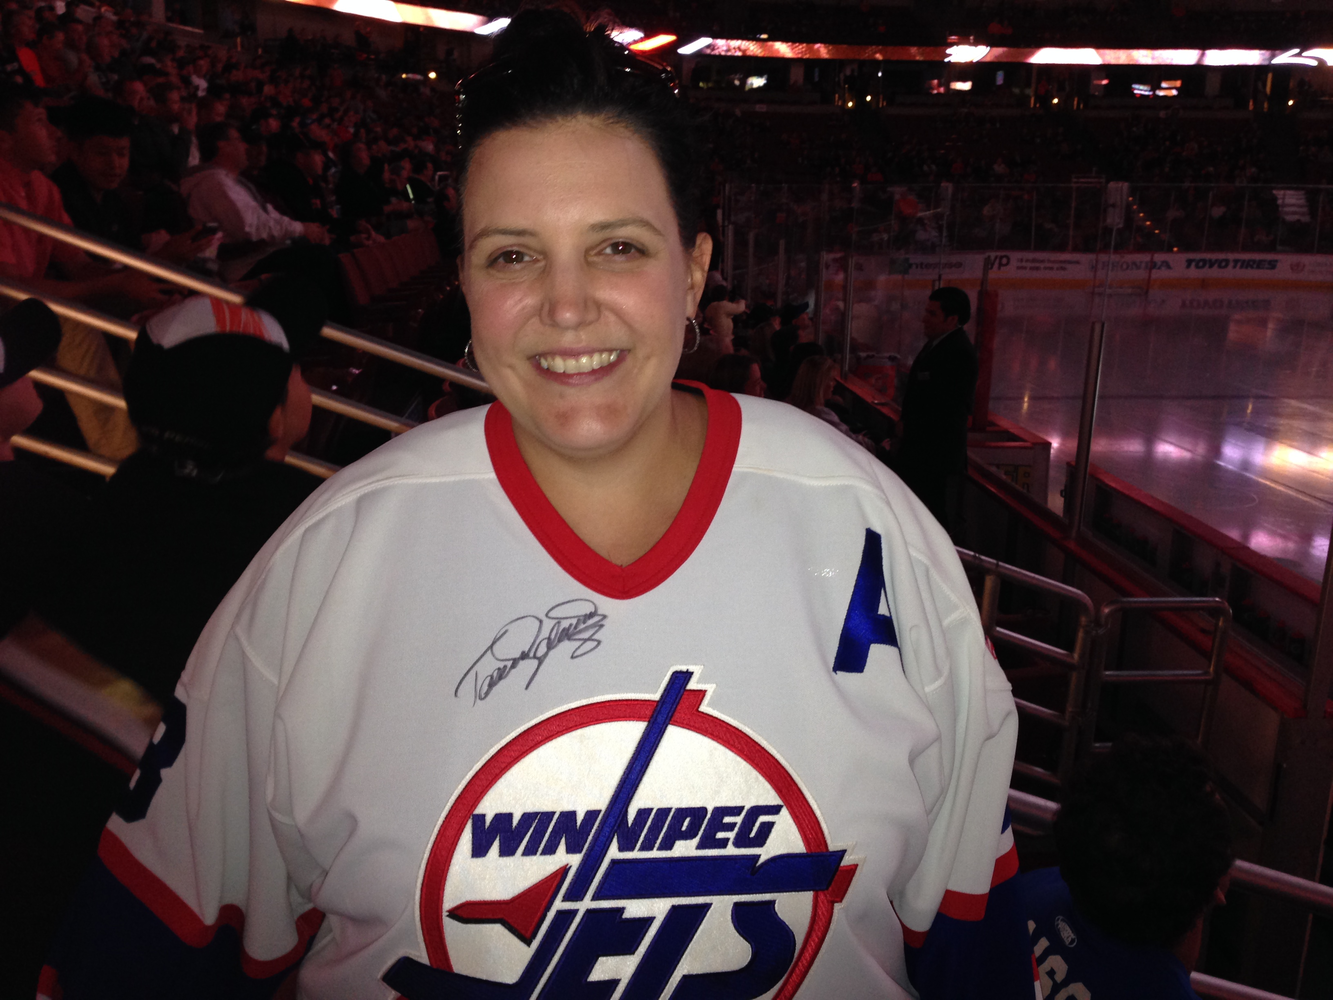 Winnipegger Kathy Vlaming cheered on the Jets in Anaheim Monday night.